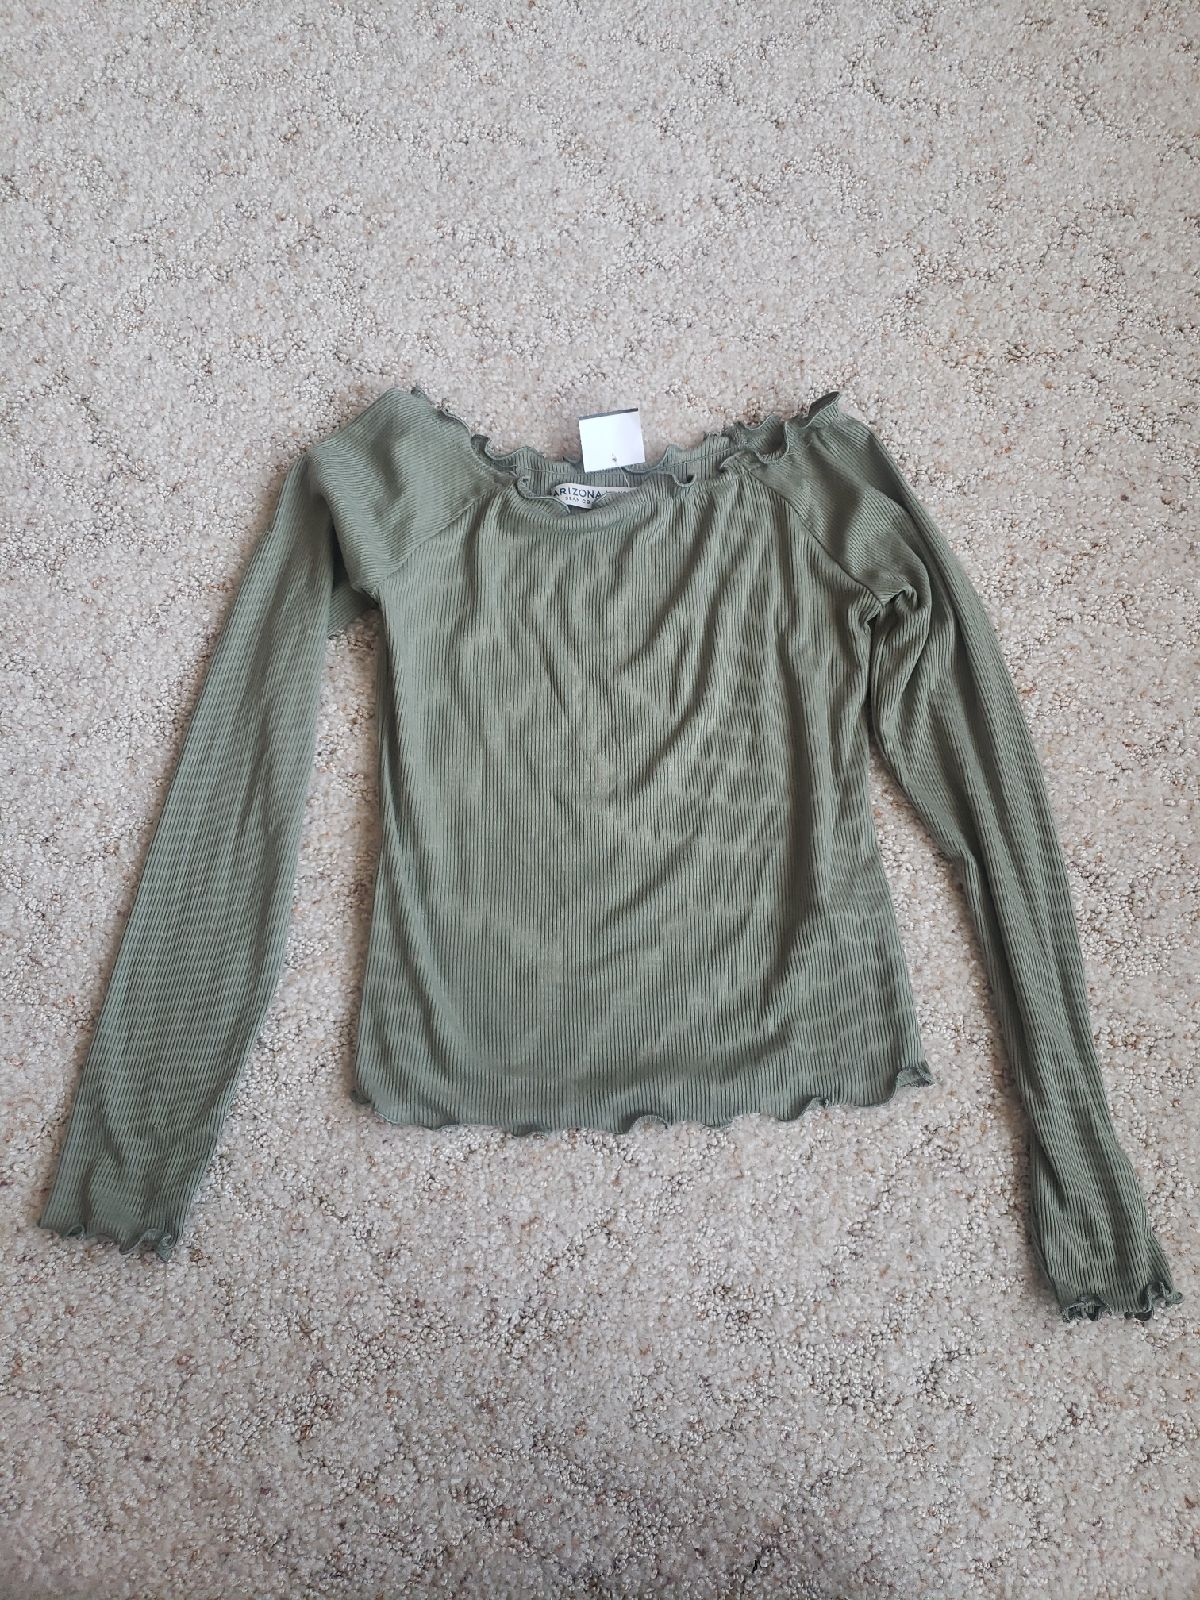 Arizona size X-small NWT